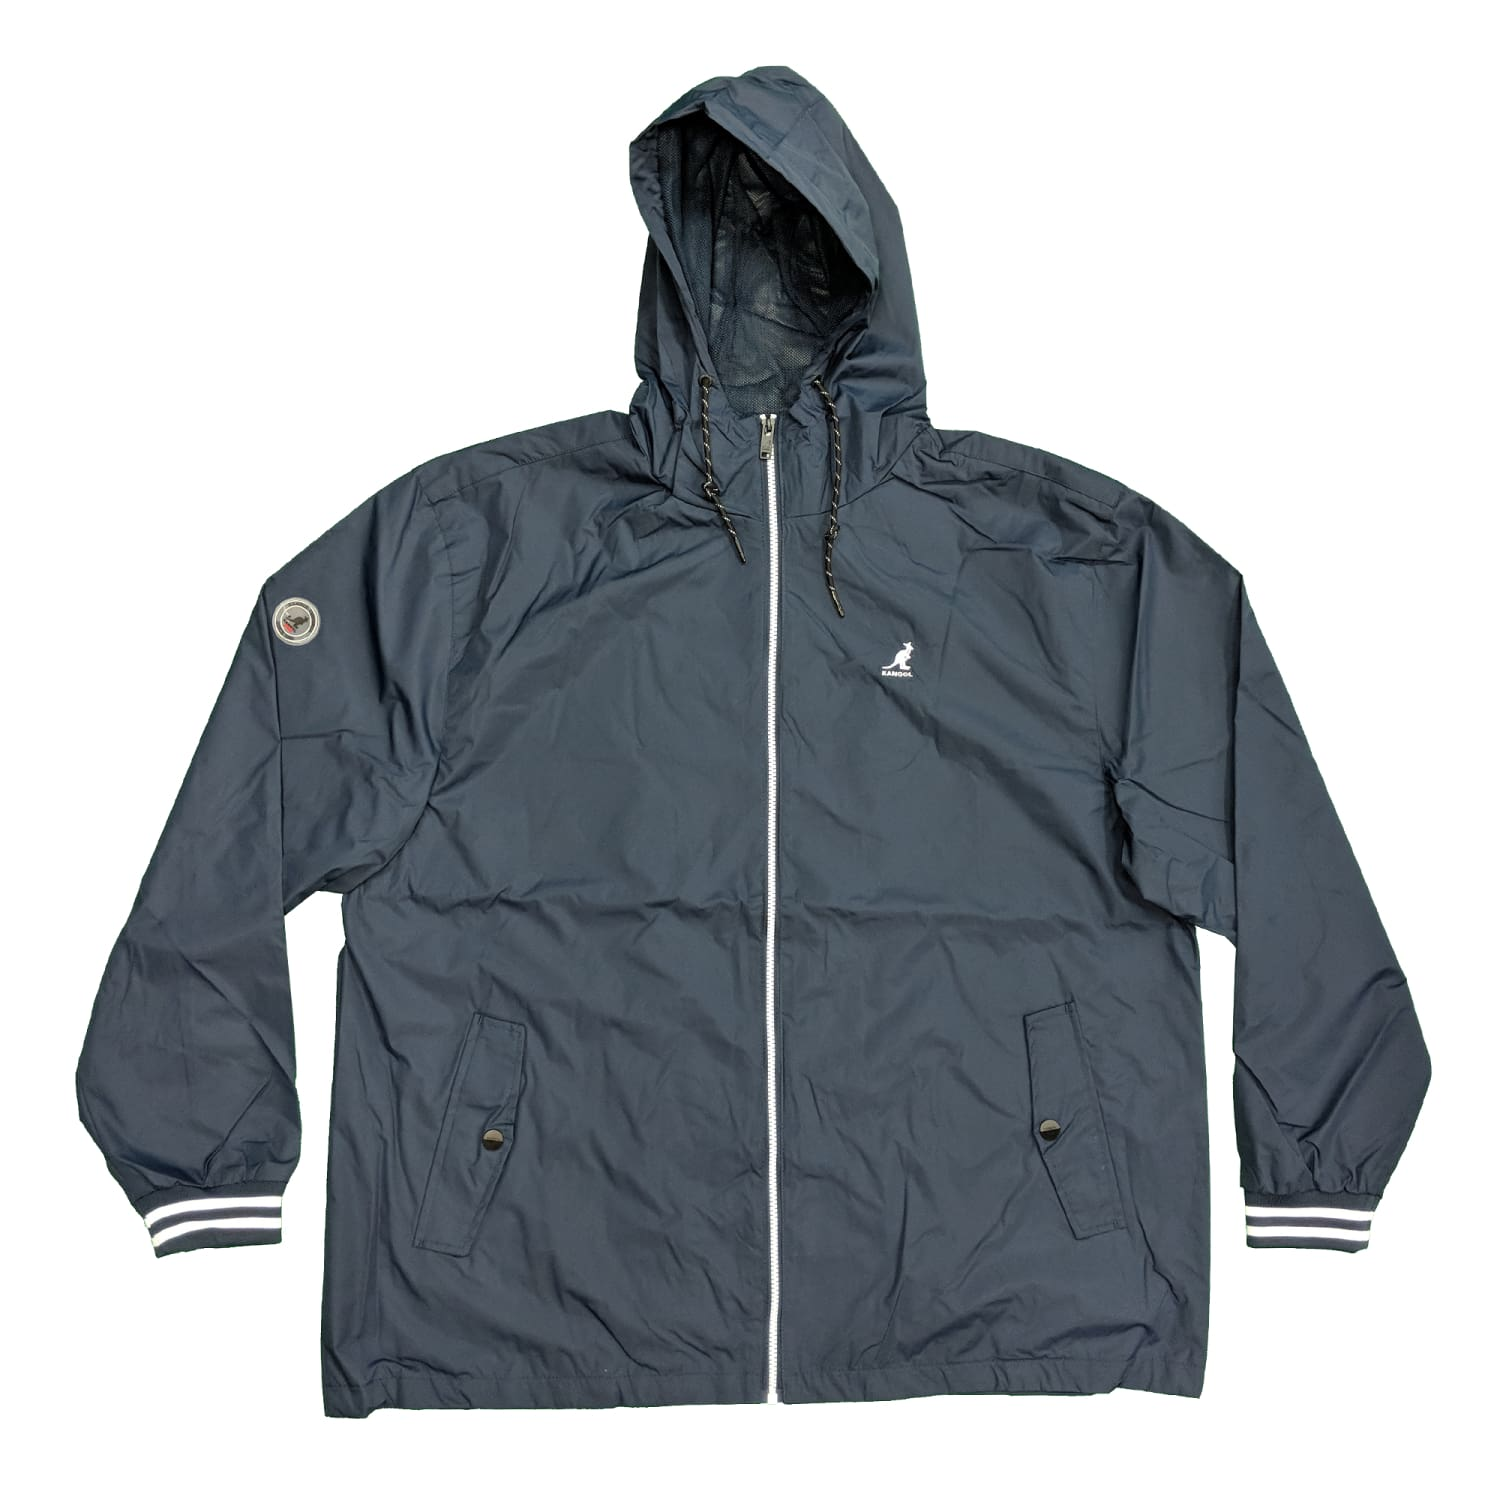 Kangol Waterproof Jacket - K601497 - Easton - Navy 1